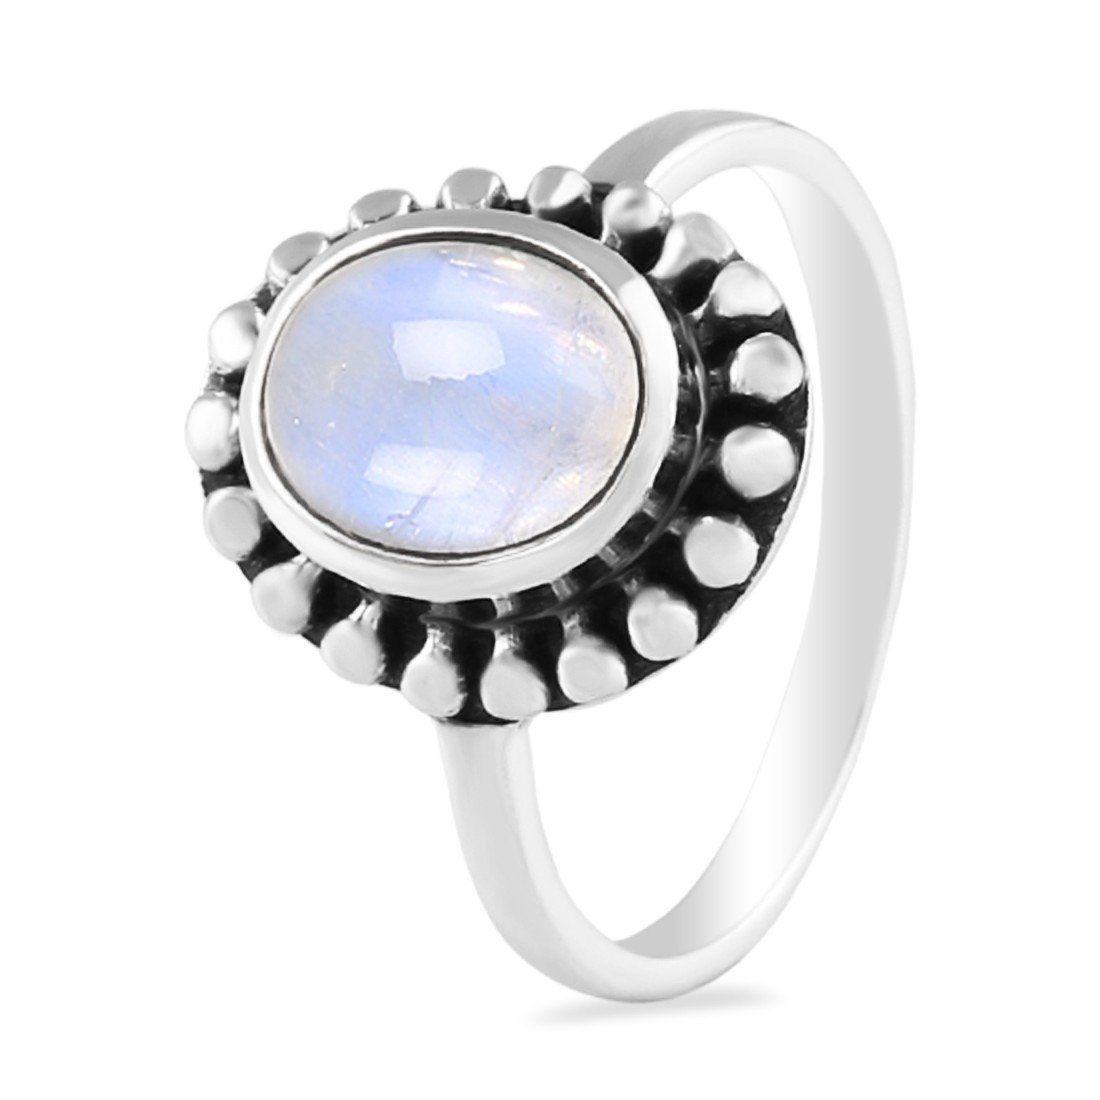 Moonstone Ring-Royal Fortune Moonstone Ring 925 SILVER & MOONSTONE